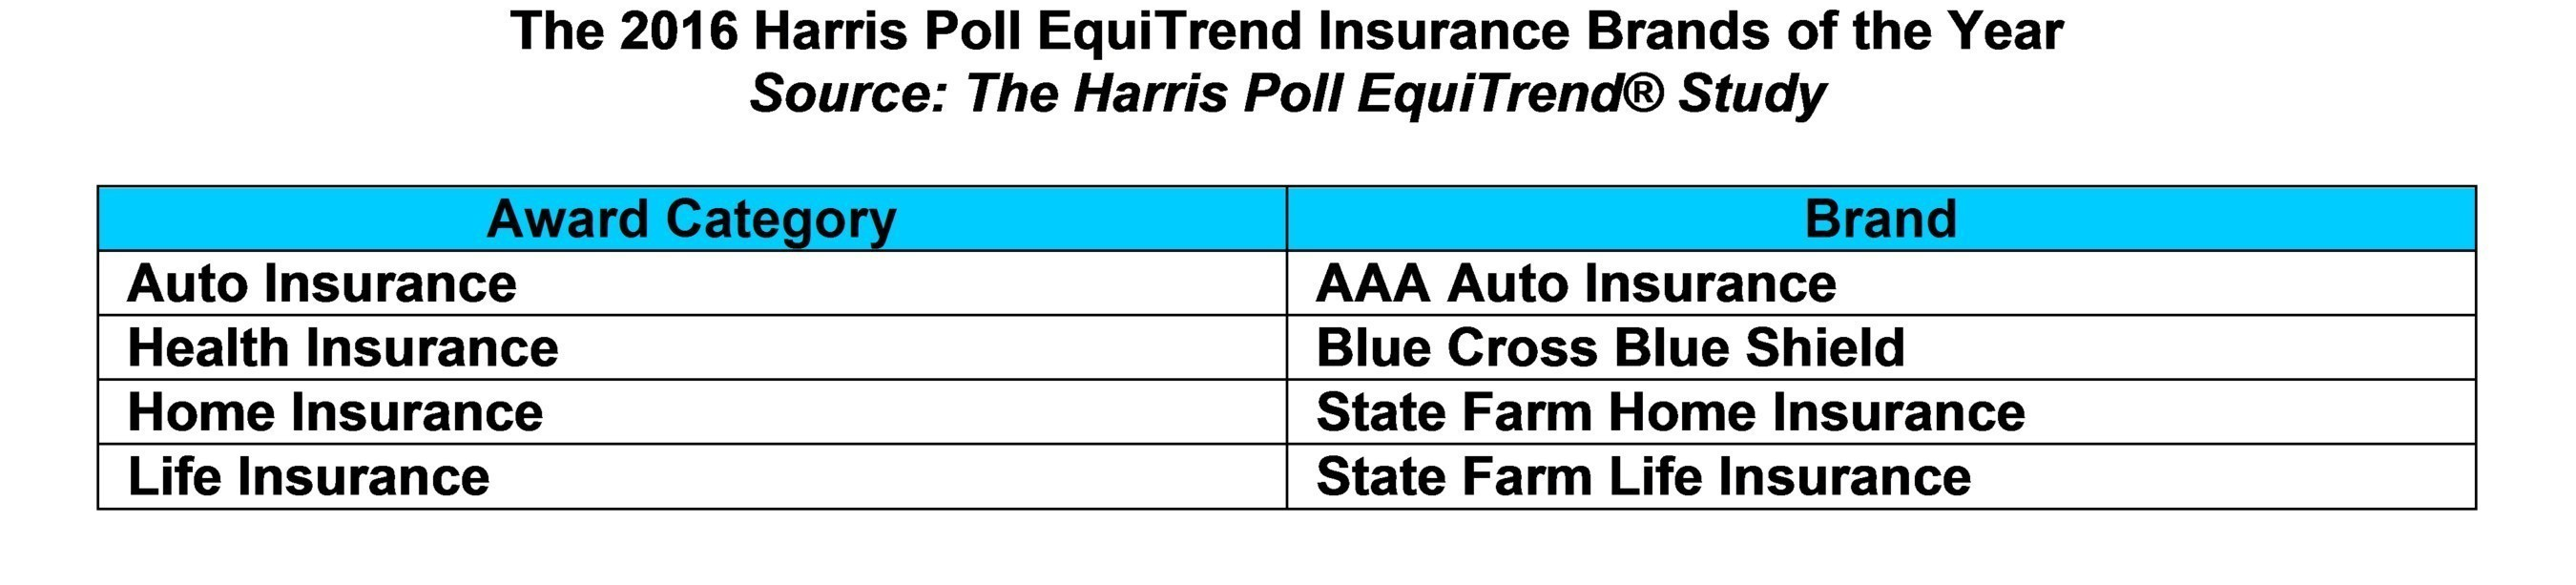 Insurance brands of the year